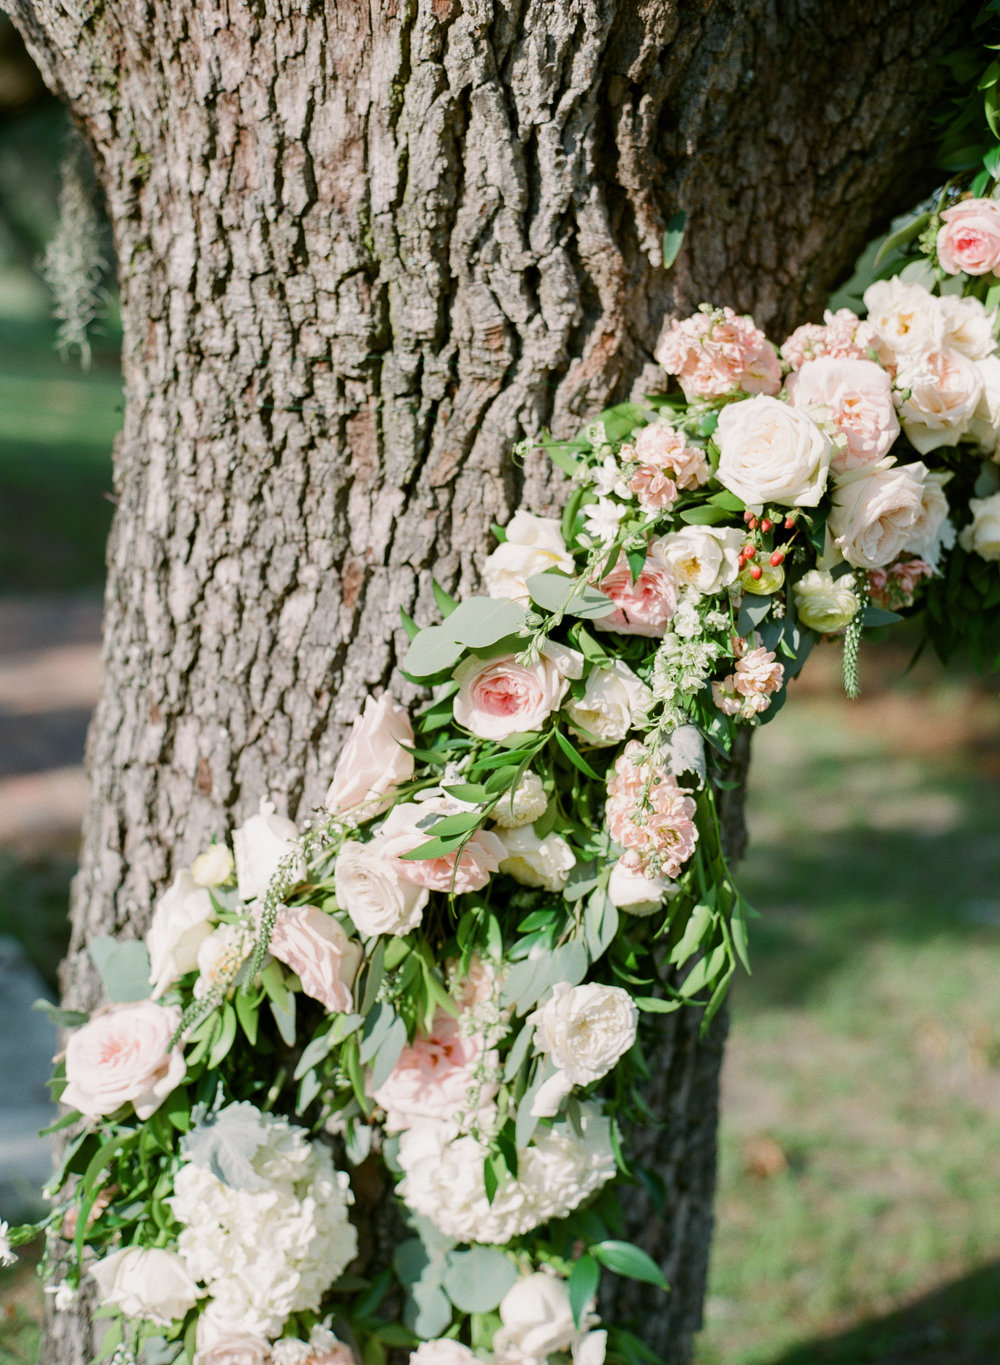 Floral Tree Magic  - A floral tree installation is something I've dreamt of for years and bringing it to life with a color palette of the softest blushes and yellows with miles of greenery felt like something straight out of a fairytale.Photography: The Happy BloomLocation: BethesdaDress: Blush by Hayley Paige